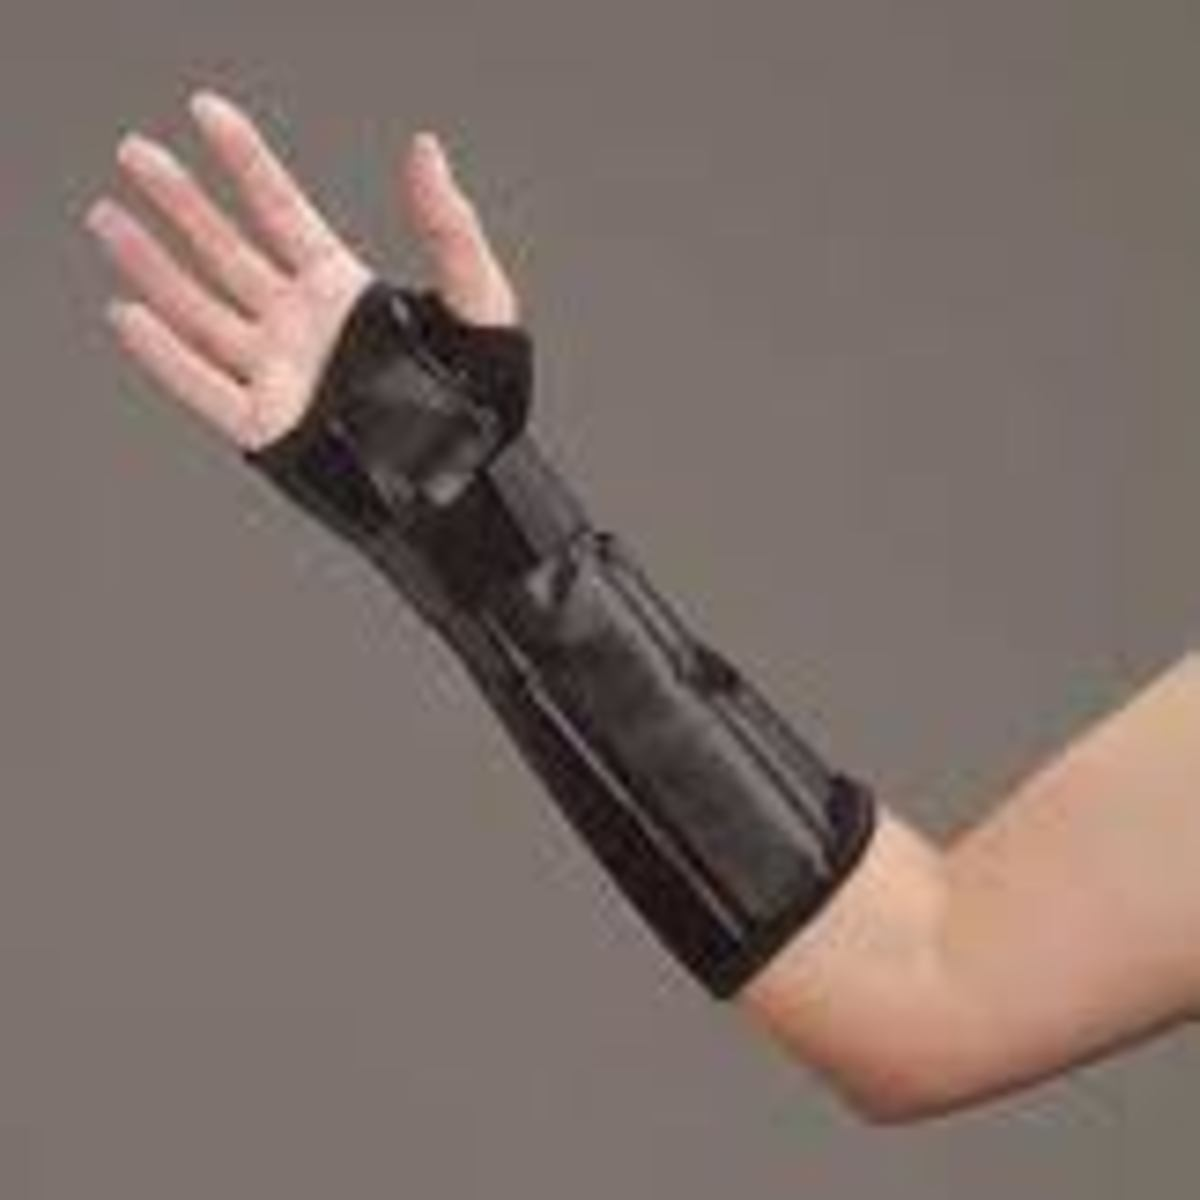 Distal radius fracture splint for immobilization of radius bone of wrist